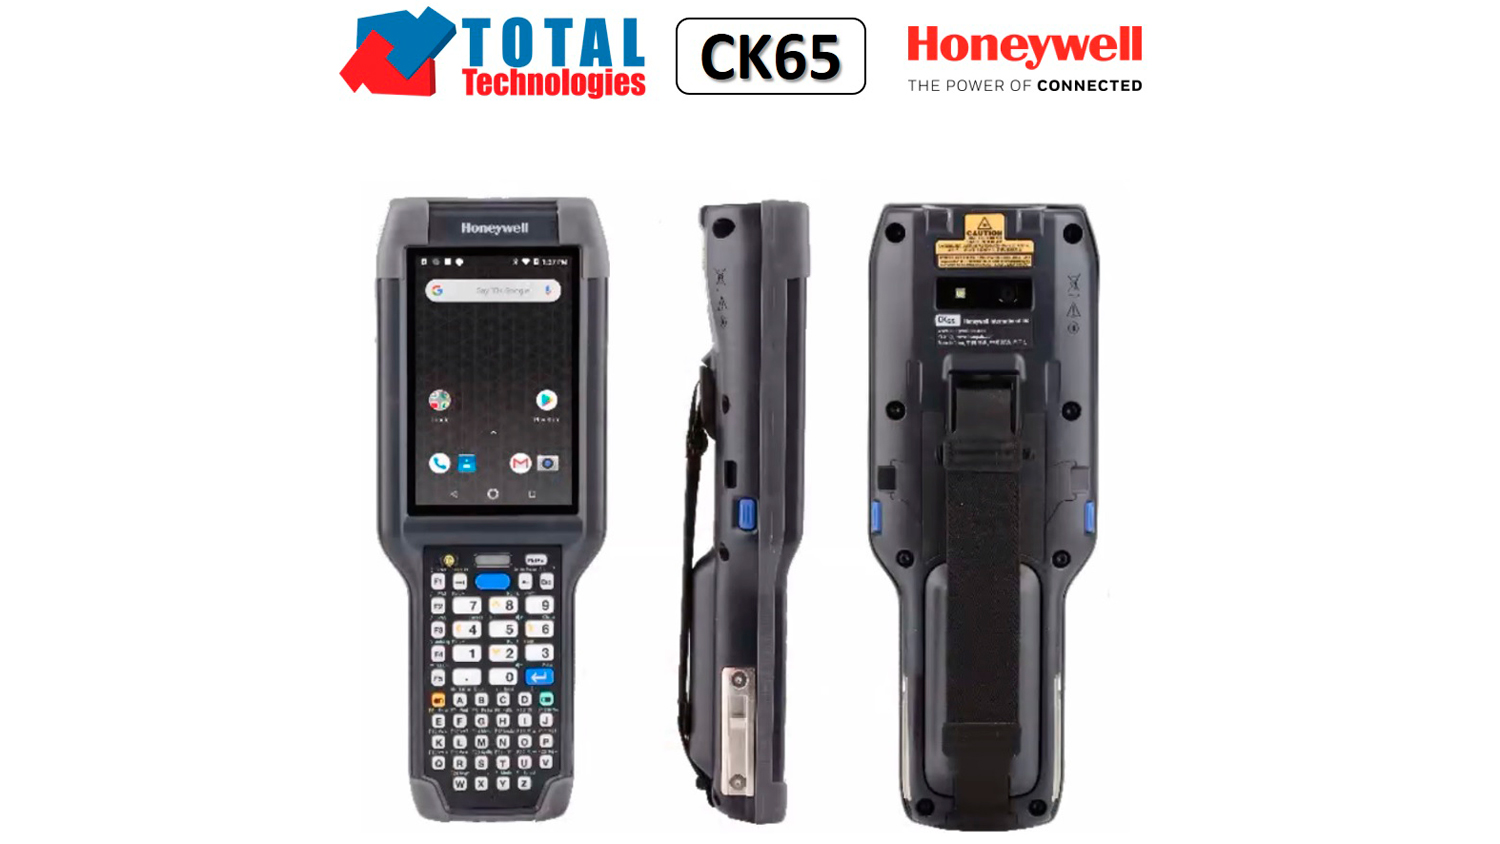 Total Technologies introduces you to the new Honeywell CK65!